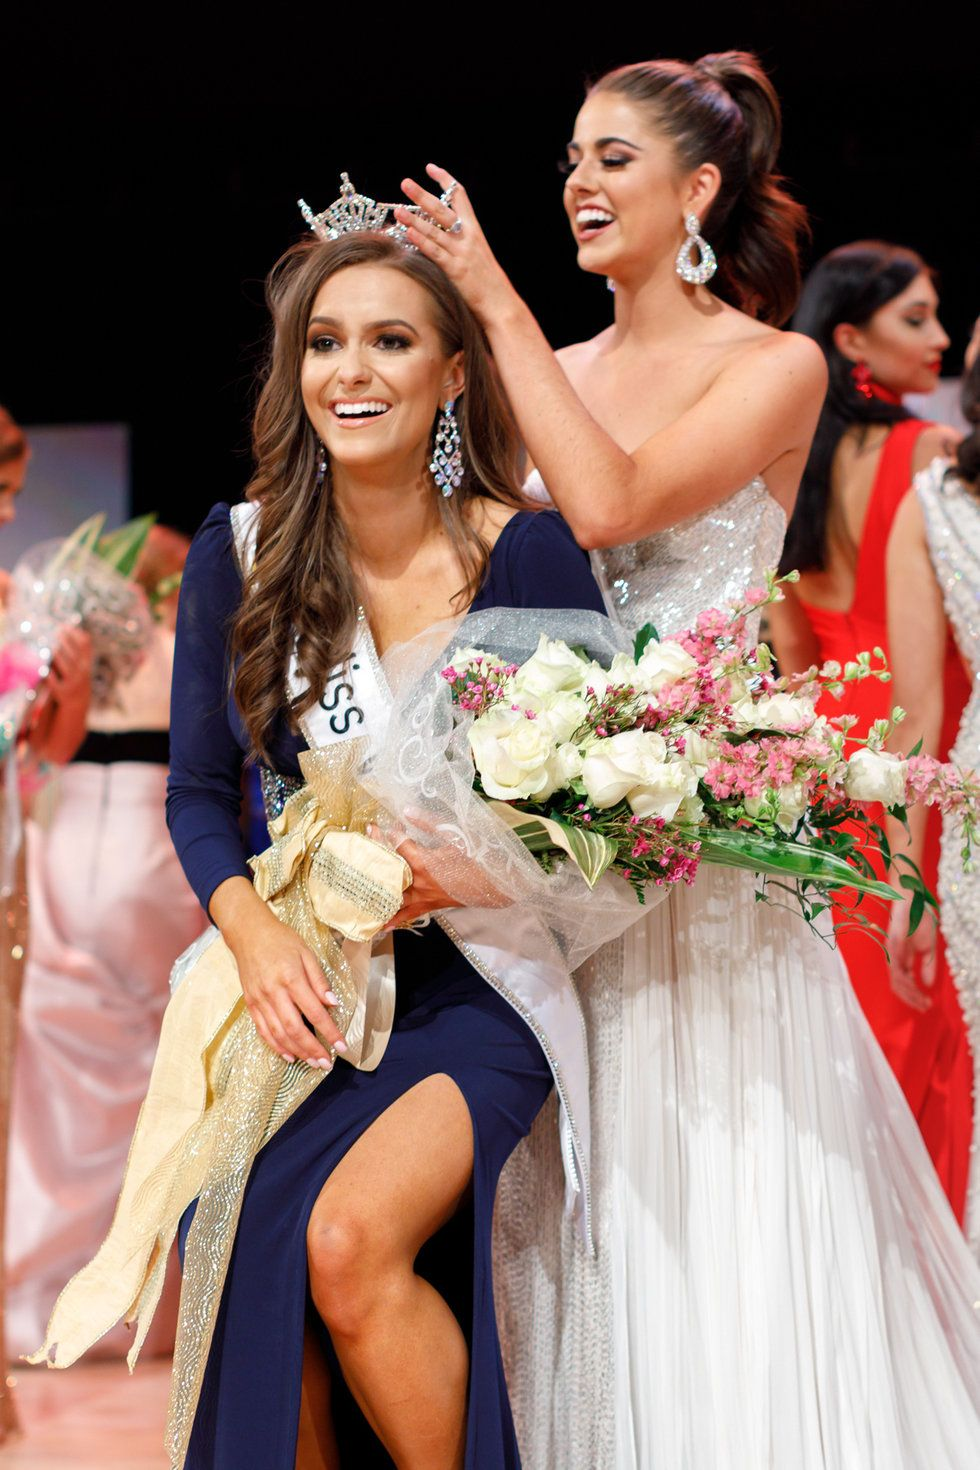 Image result for Biochemist crowned 2019 Miss Virginia after performing science experiment as talent